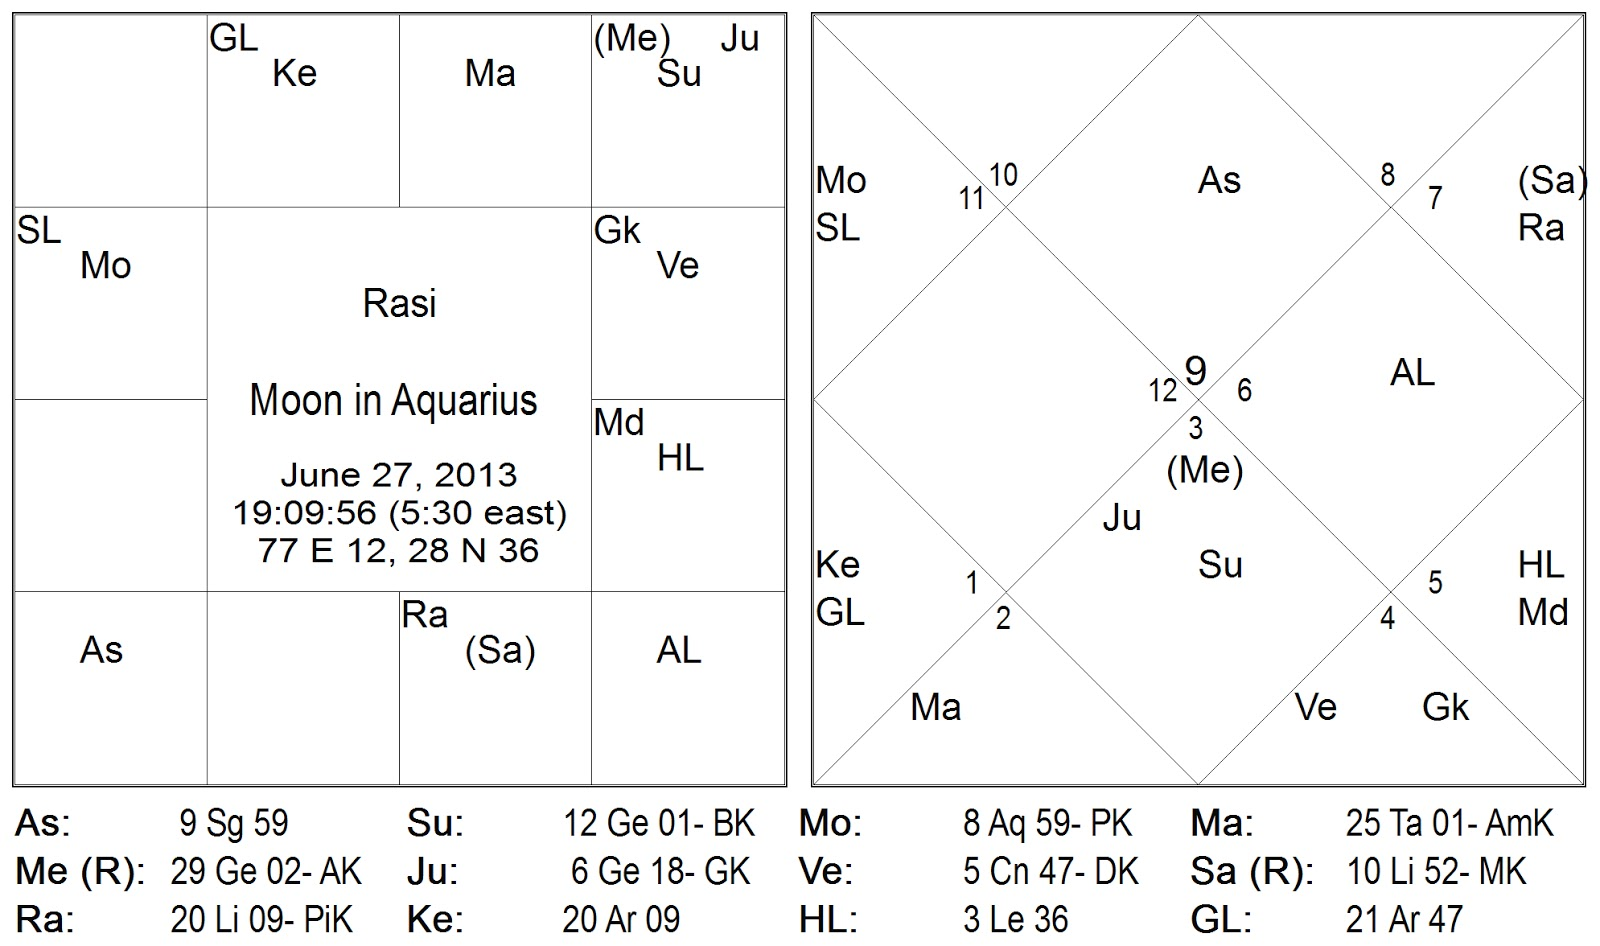 Active instruction during this transit of the vedic moon is coming primarily from two grahas gur guru